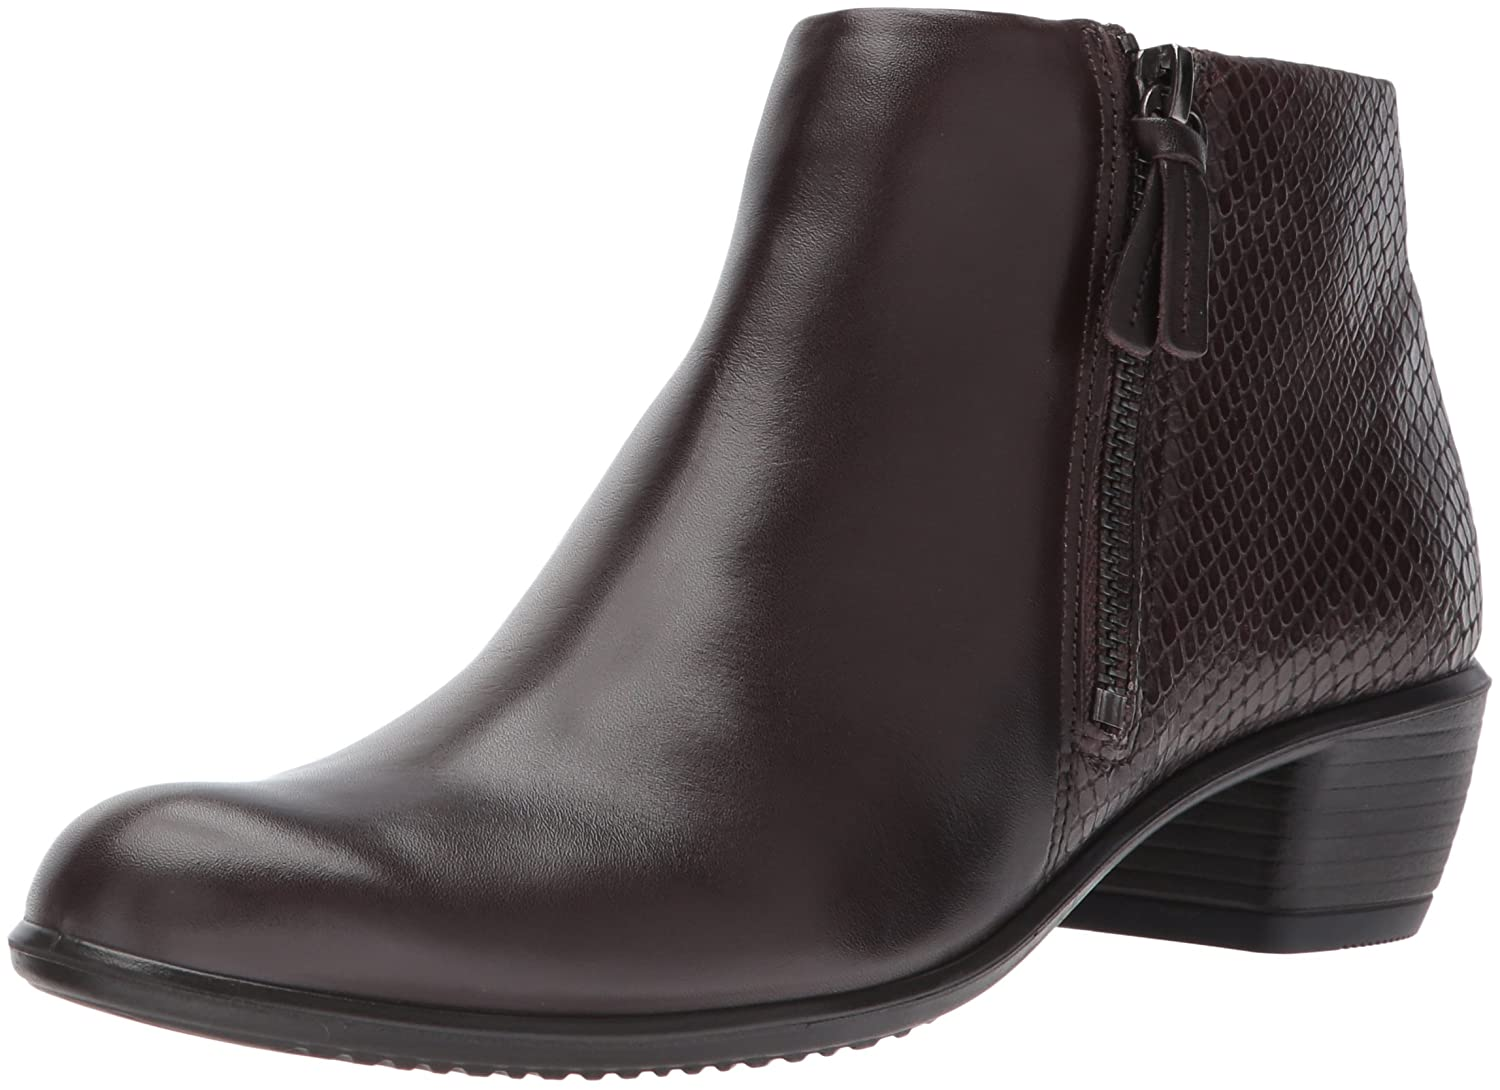 ECCO Women's Touch 39 35 Ankle Bootie B01NBYD5W1 39 Touch EU / 8-8.5 US|Coffee/Coffee fd70fd